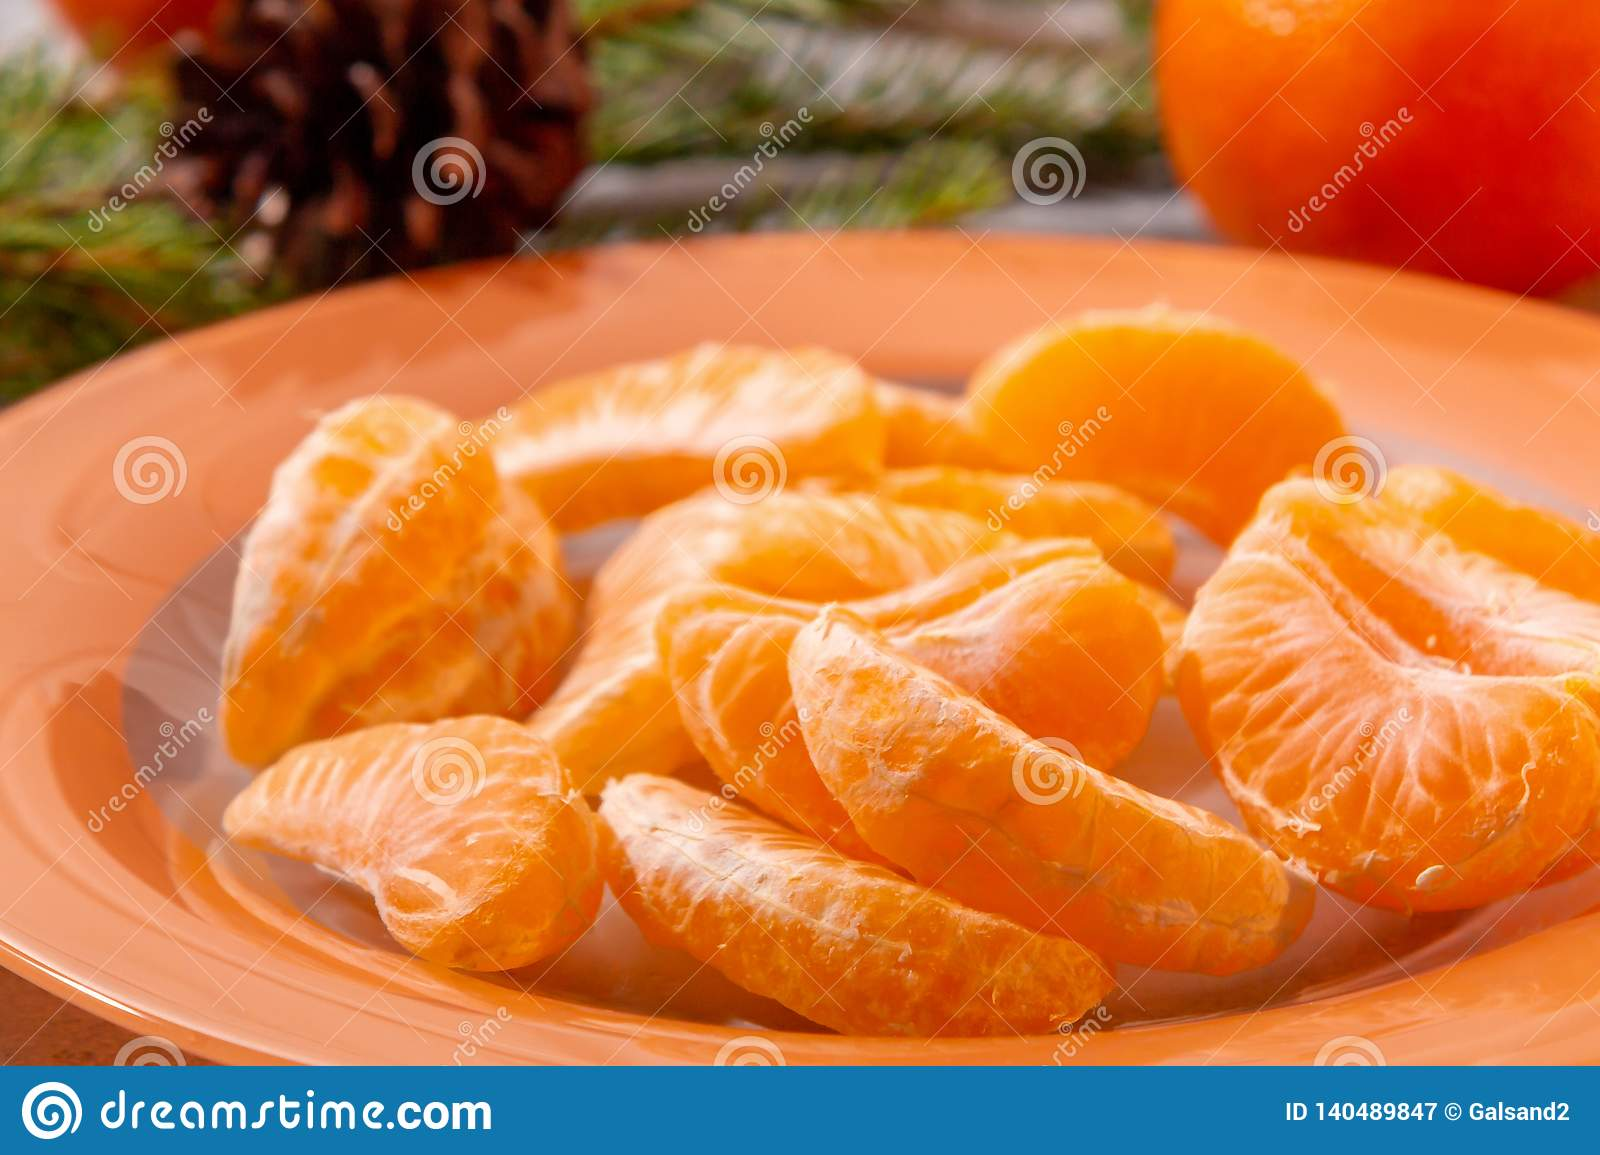 Several peeled tangerine slices on an orange plate with tree branches and a cone-a traditional Christmas and new year`s